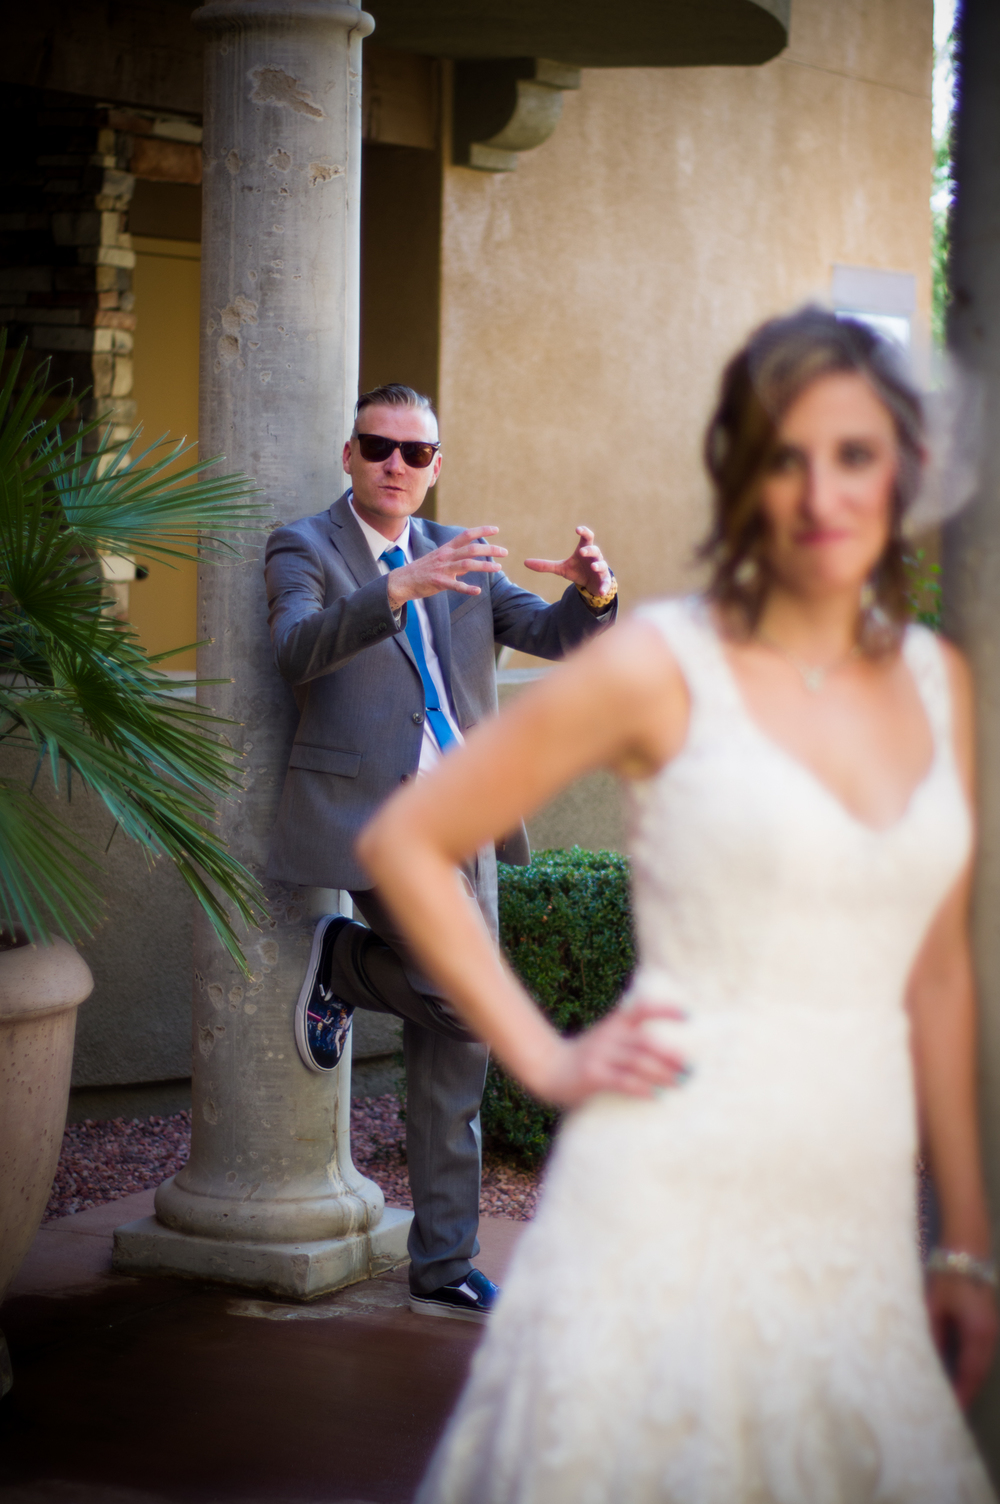 Nick_Cardona_Photography_Gilbert_AZ_wedding_Photographer_Blythe-10.jpg